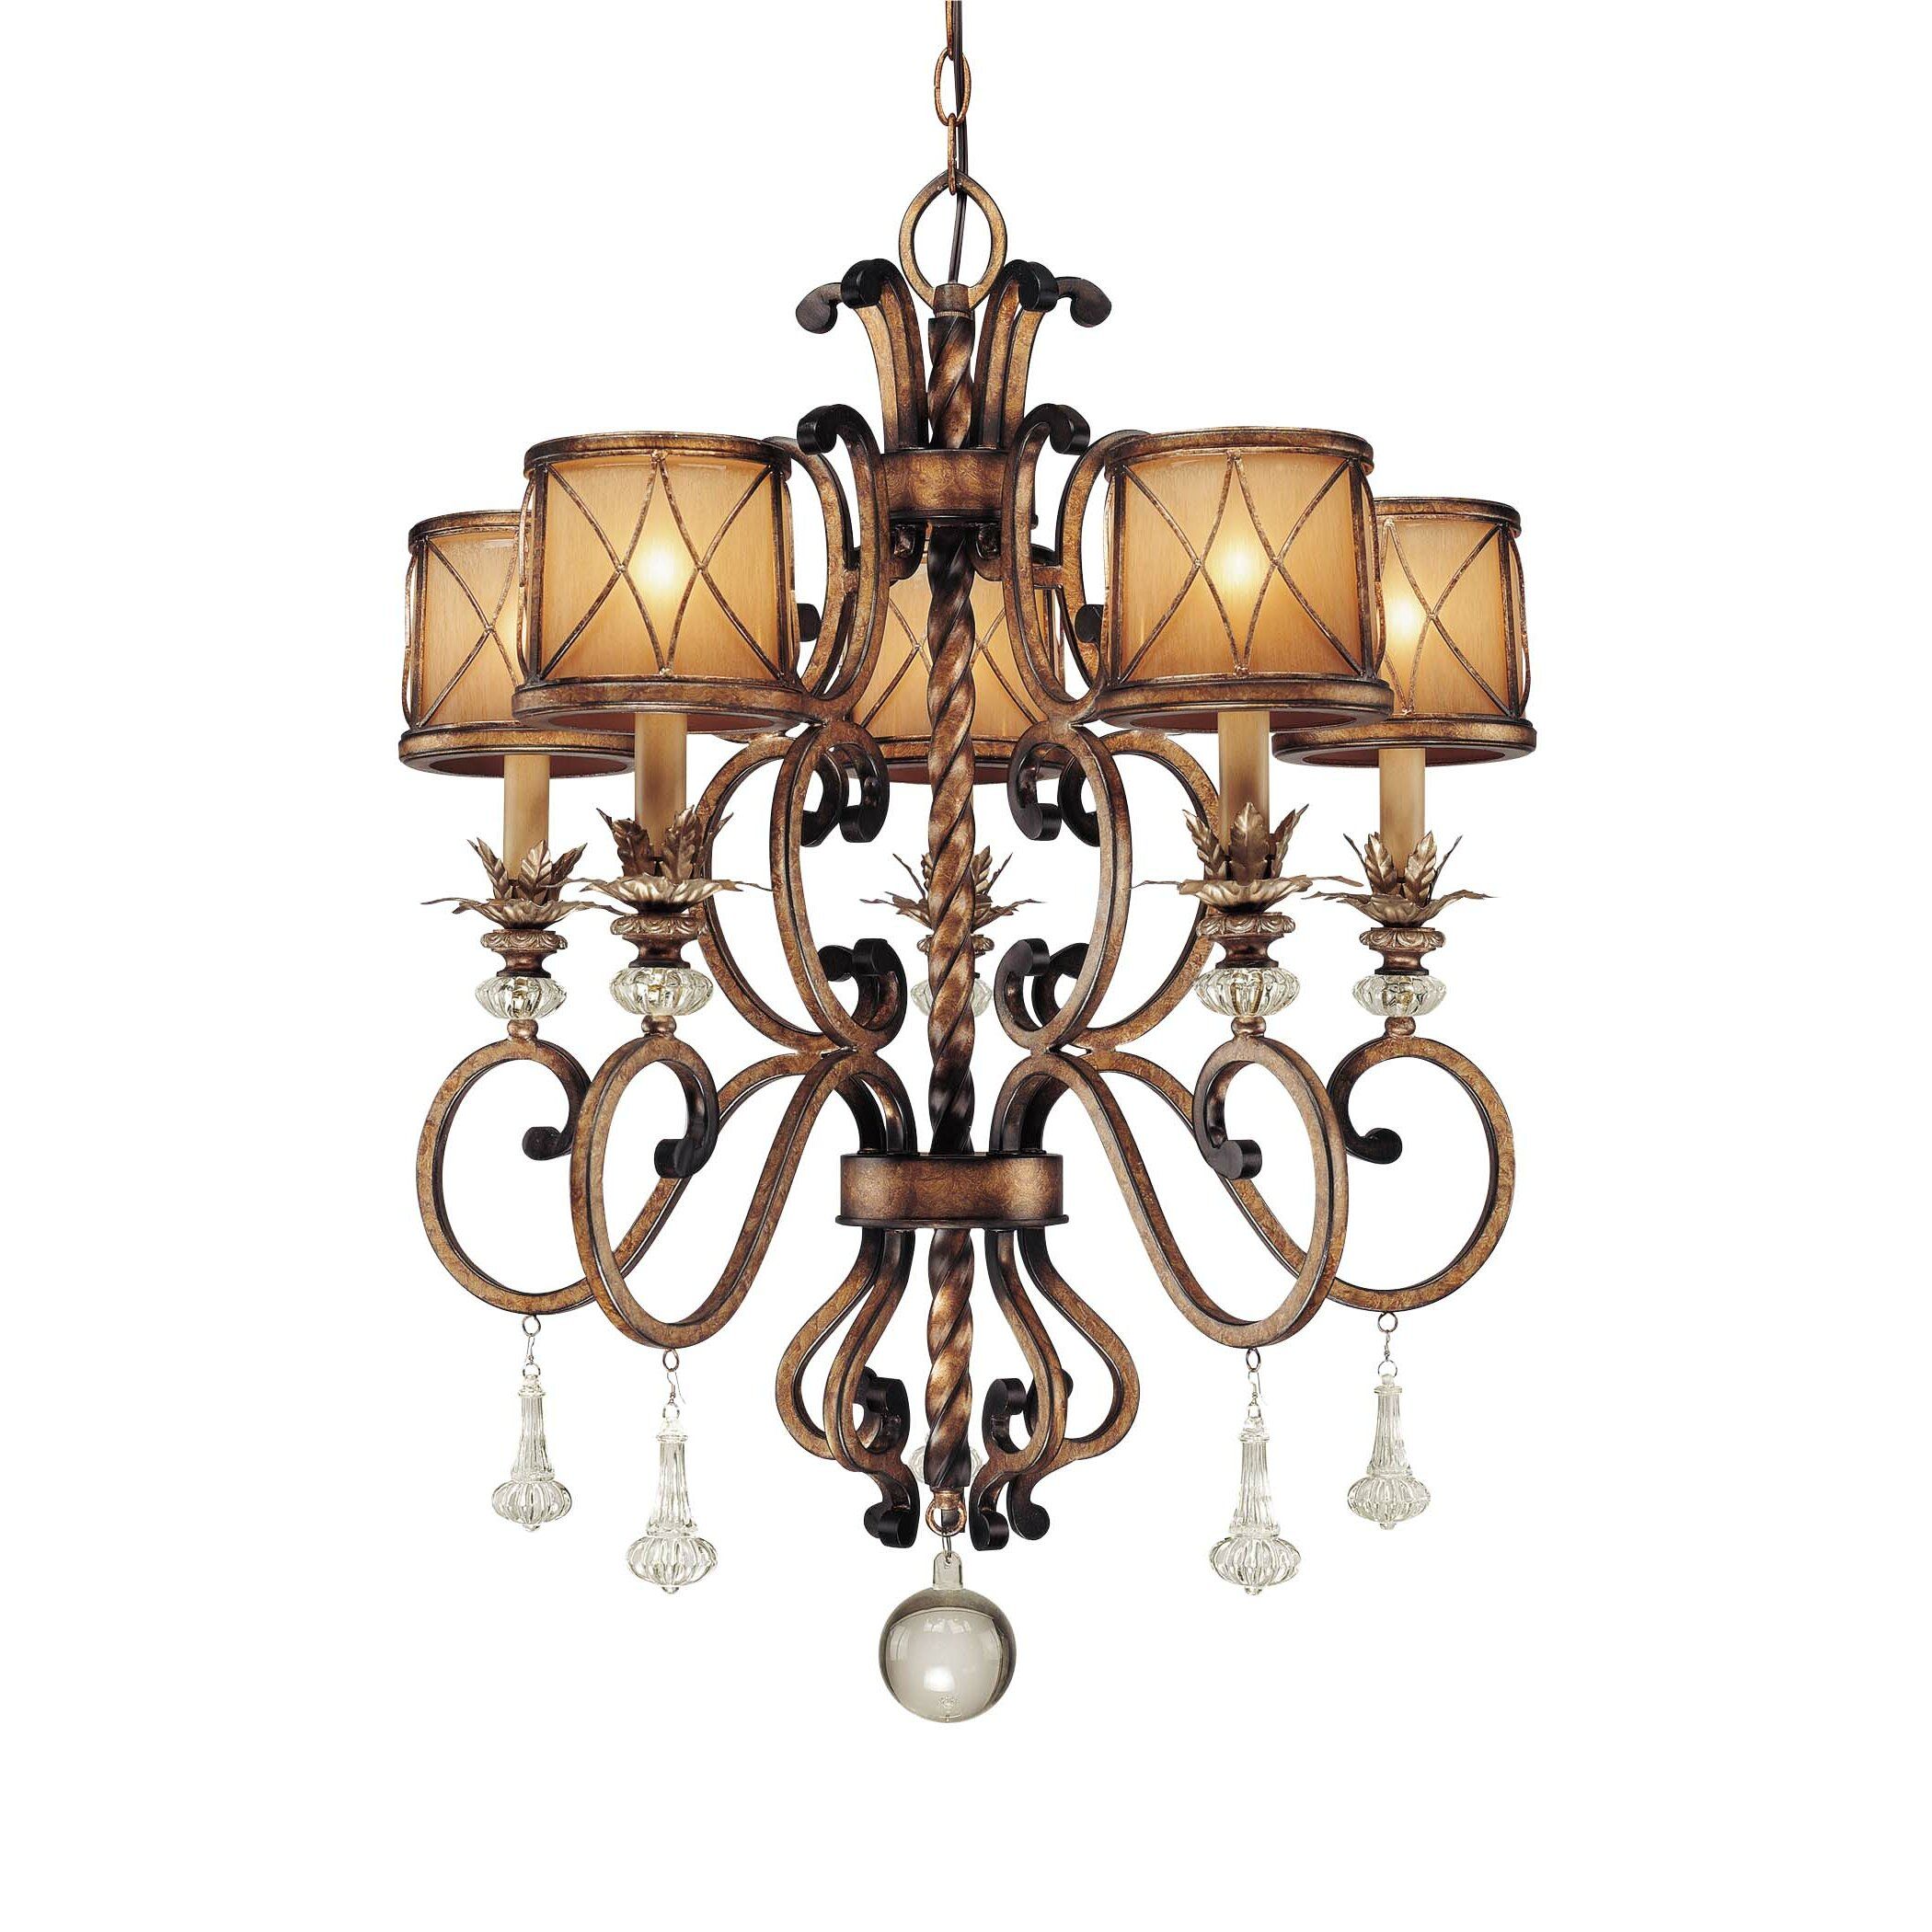 Minka Lavery Aston Court 5 Light Chandelier Reviews Wayfair